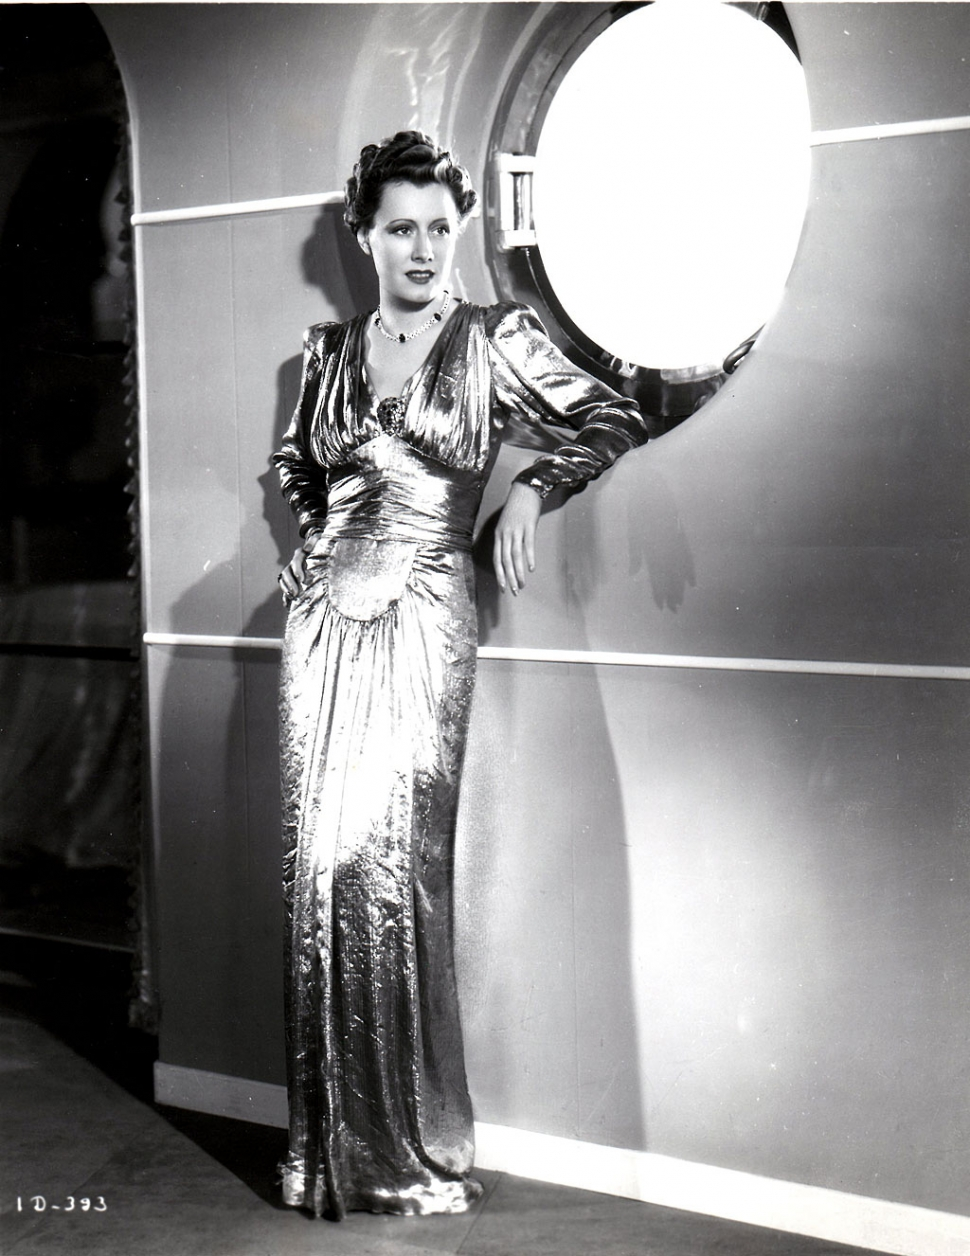 Irene Dunne wearing Greer gown in 1939. Photo by Richard Kelly.